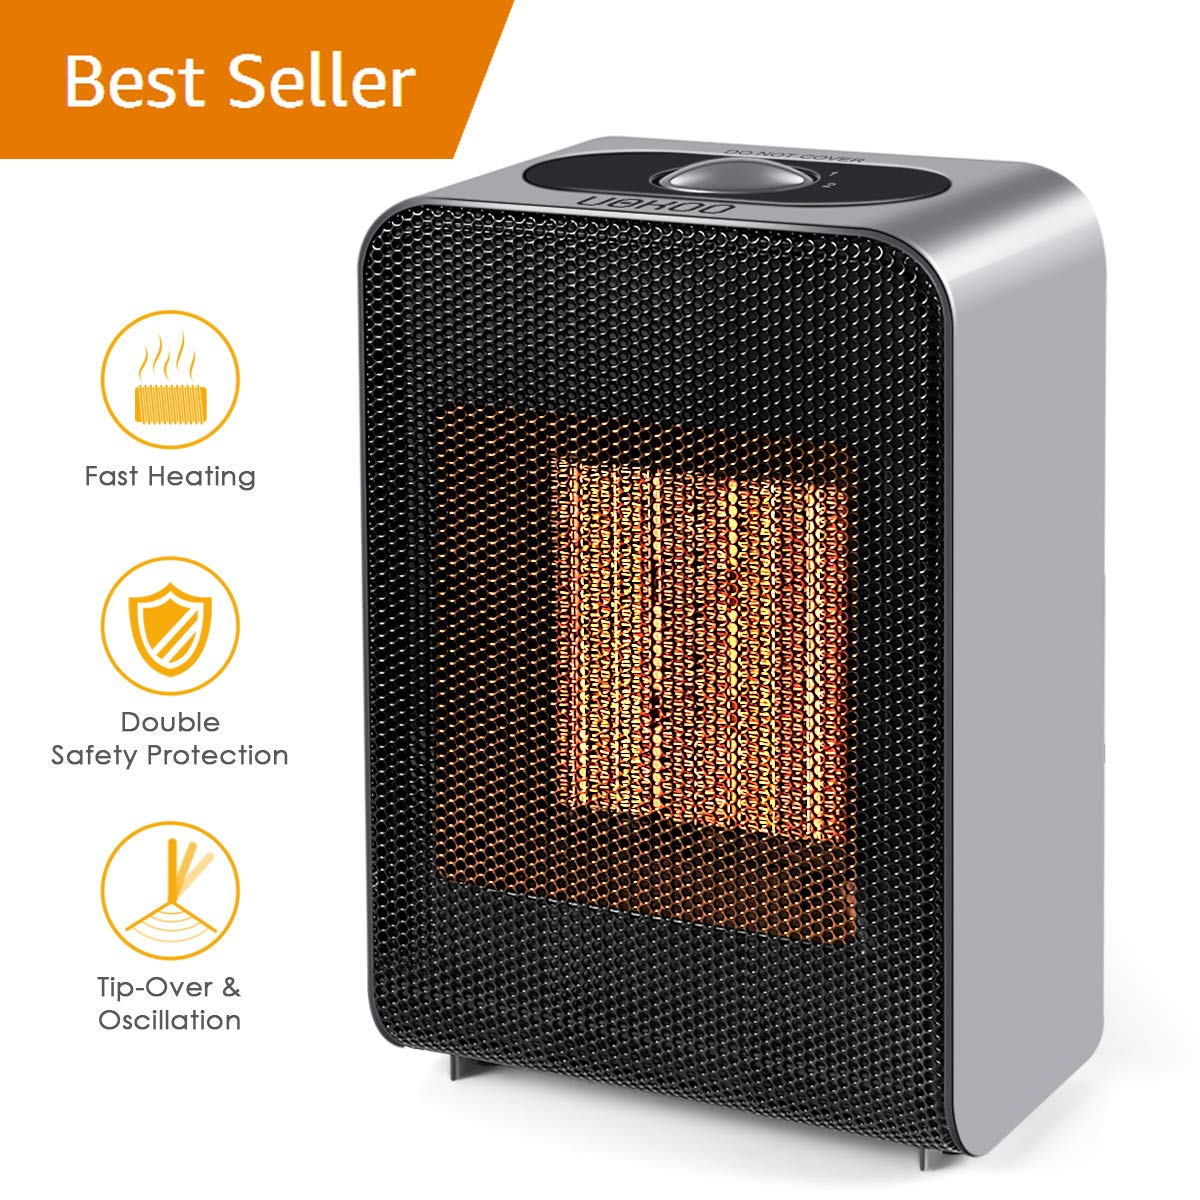 Ceramic Space Heater, 1500W Fast Heat Portable Electric Space Heater with 2s Quick Heating PTC Plate, Overheat & Tip-Over Protection for Office Small Room Desk VANTAKOOL